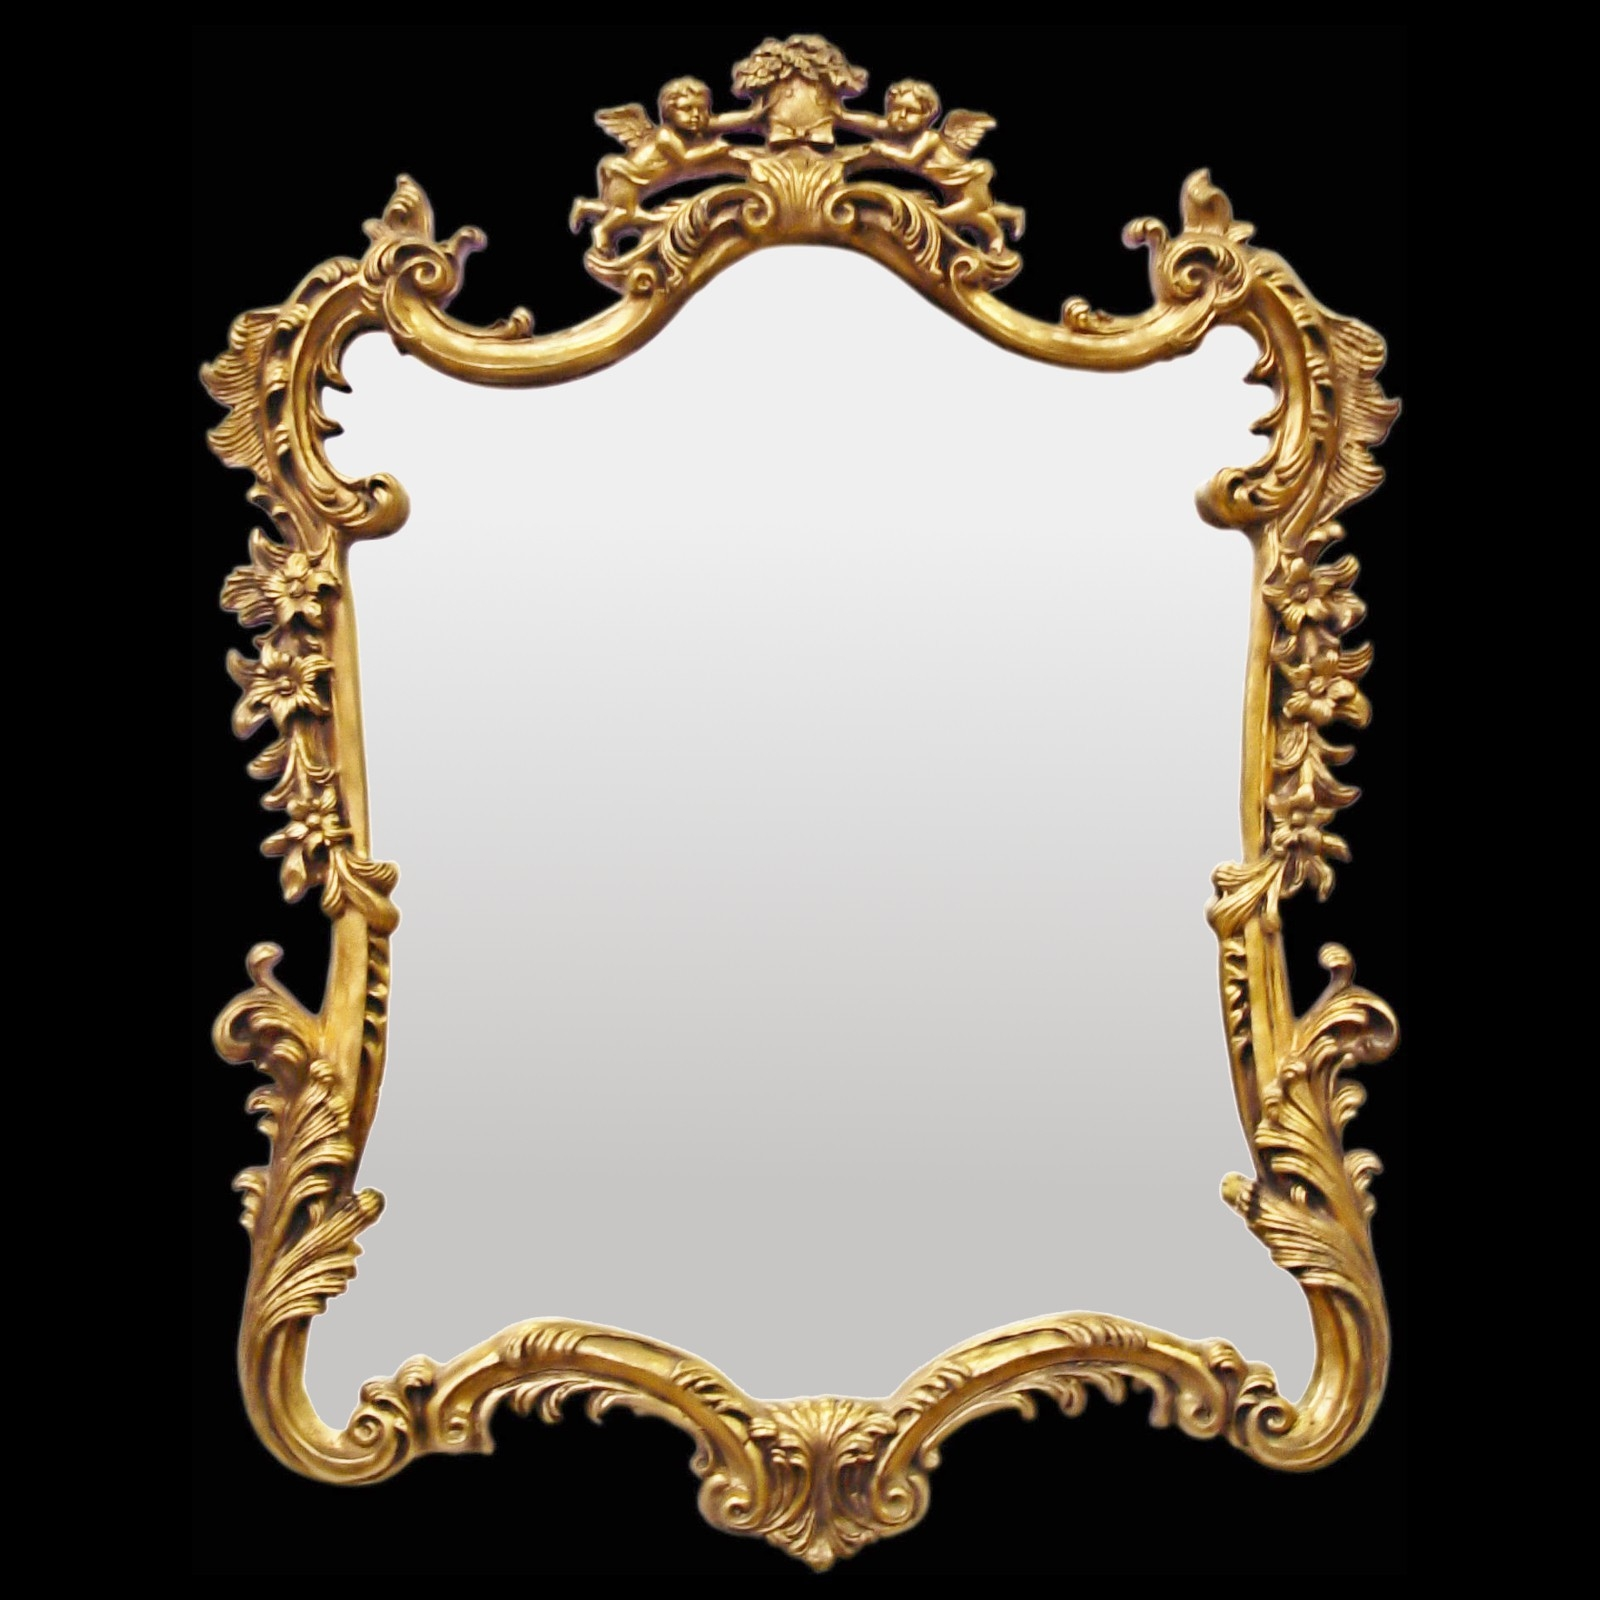 Manificent Design Baroque Wall Mirror Fancy White Baroque 7 Mirror With Regard To White Baroque Wall Mirror (Image 9 of 15)